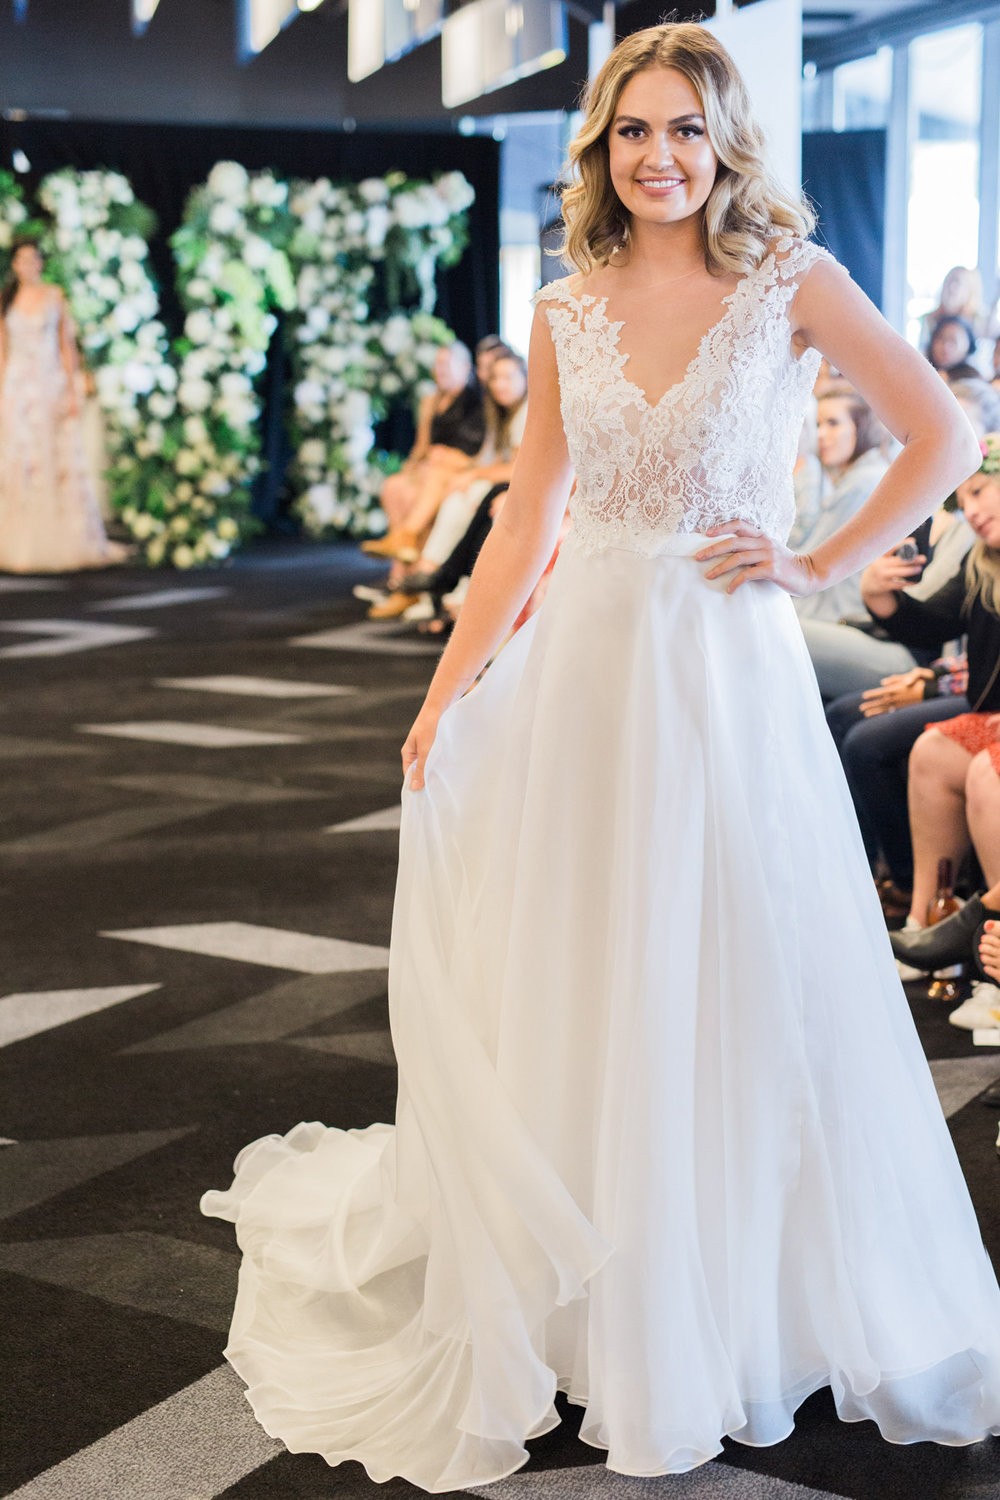 Love-Wedding-Festival-Sydney-Wedding-Gown-Angela-Osagie-25.jpg